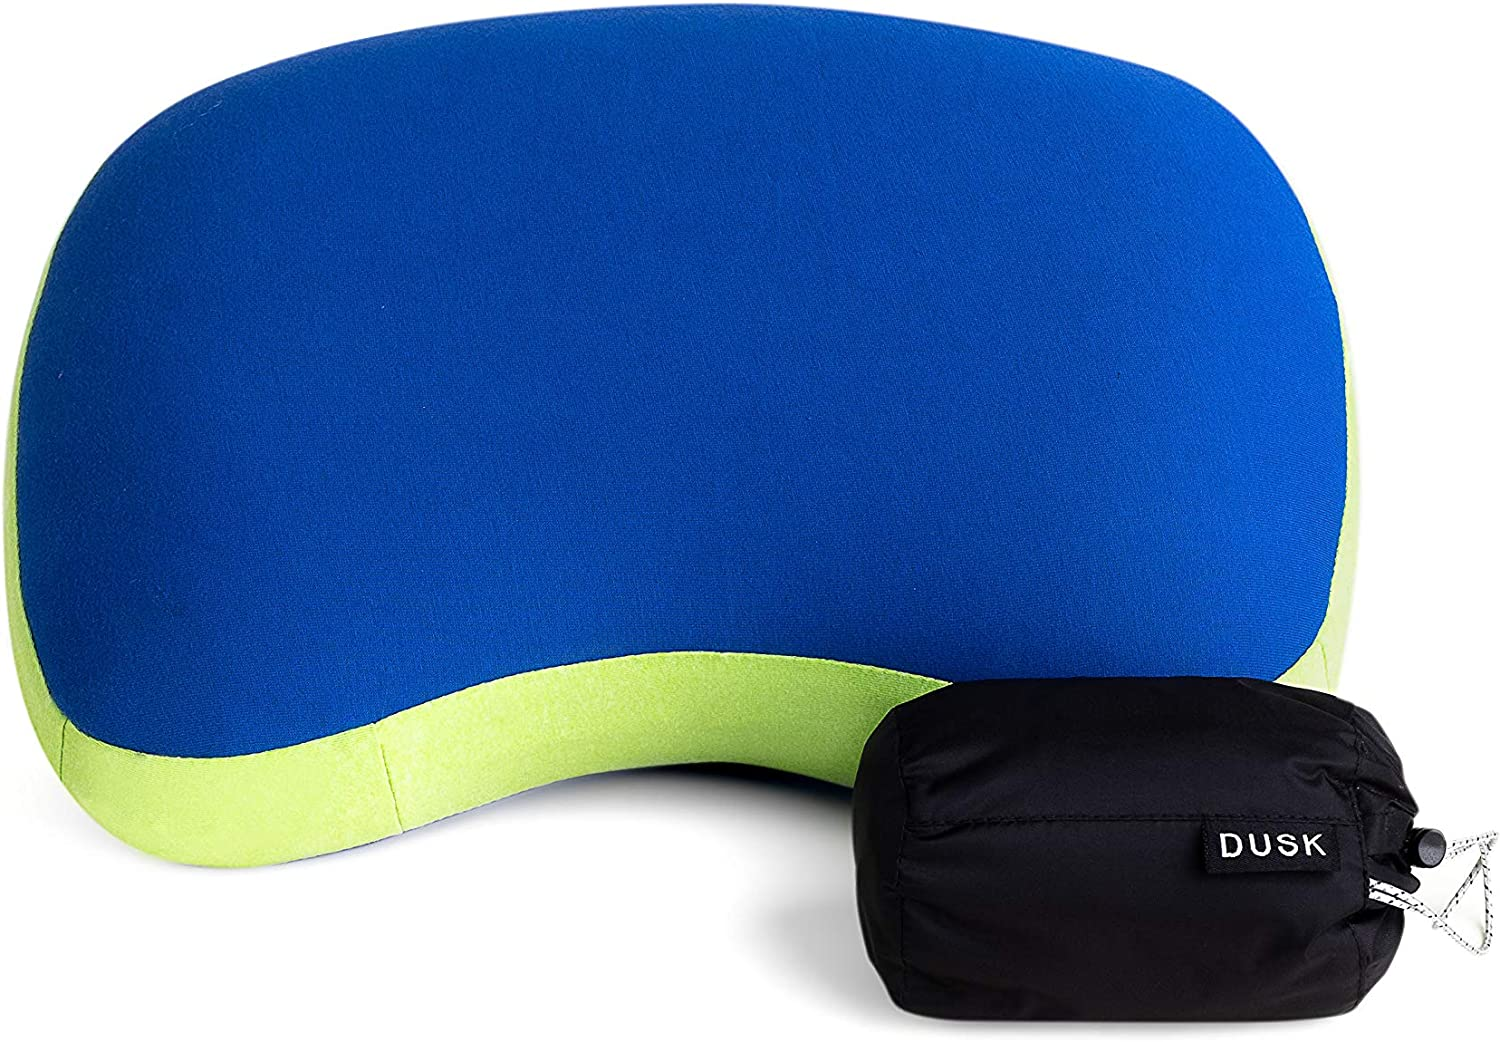 Compact Pillow with Water-Resistant Portable Bag DUSK Camping Inflatable Lightweight Soft Backpacking Pillow Comfortable